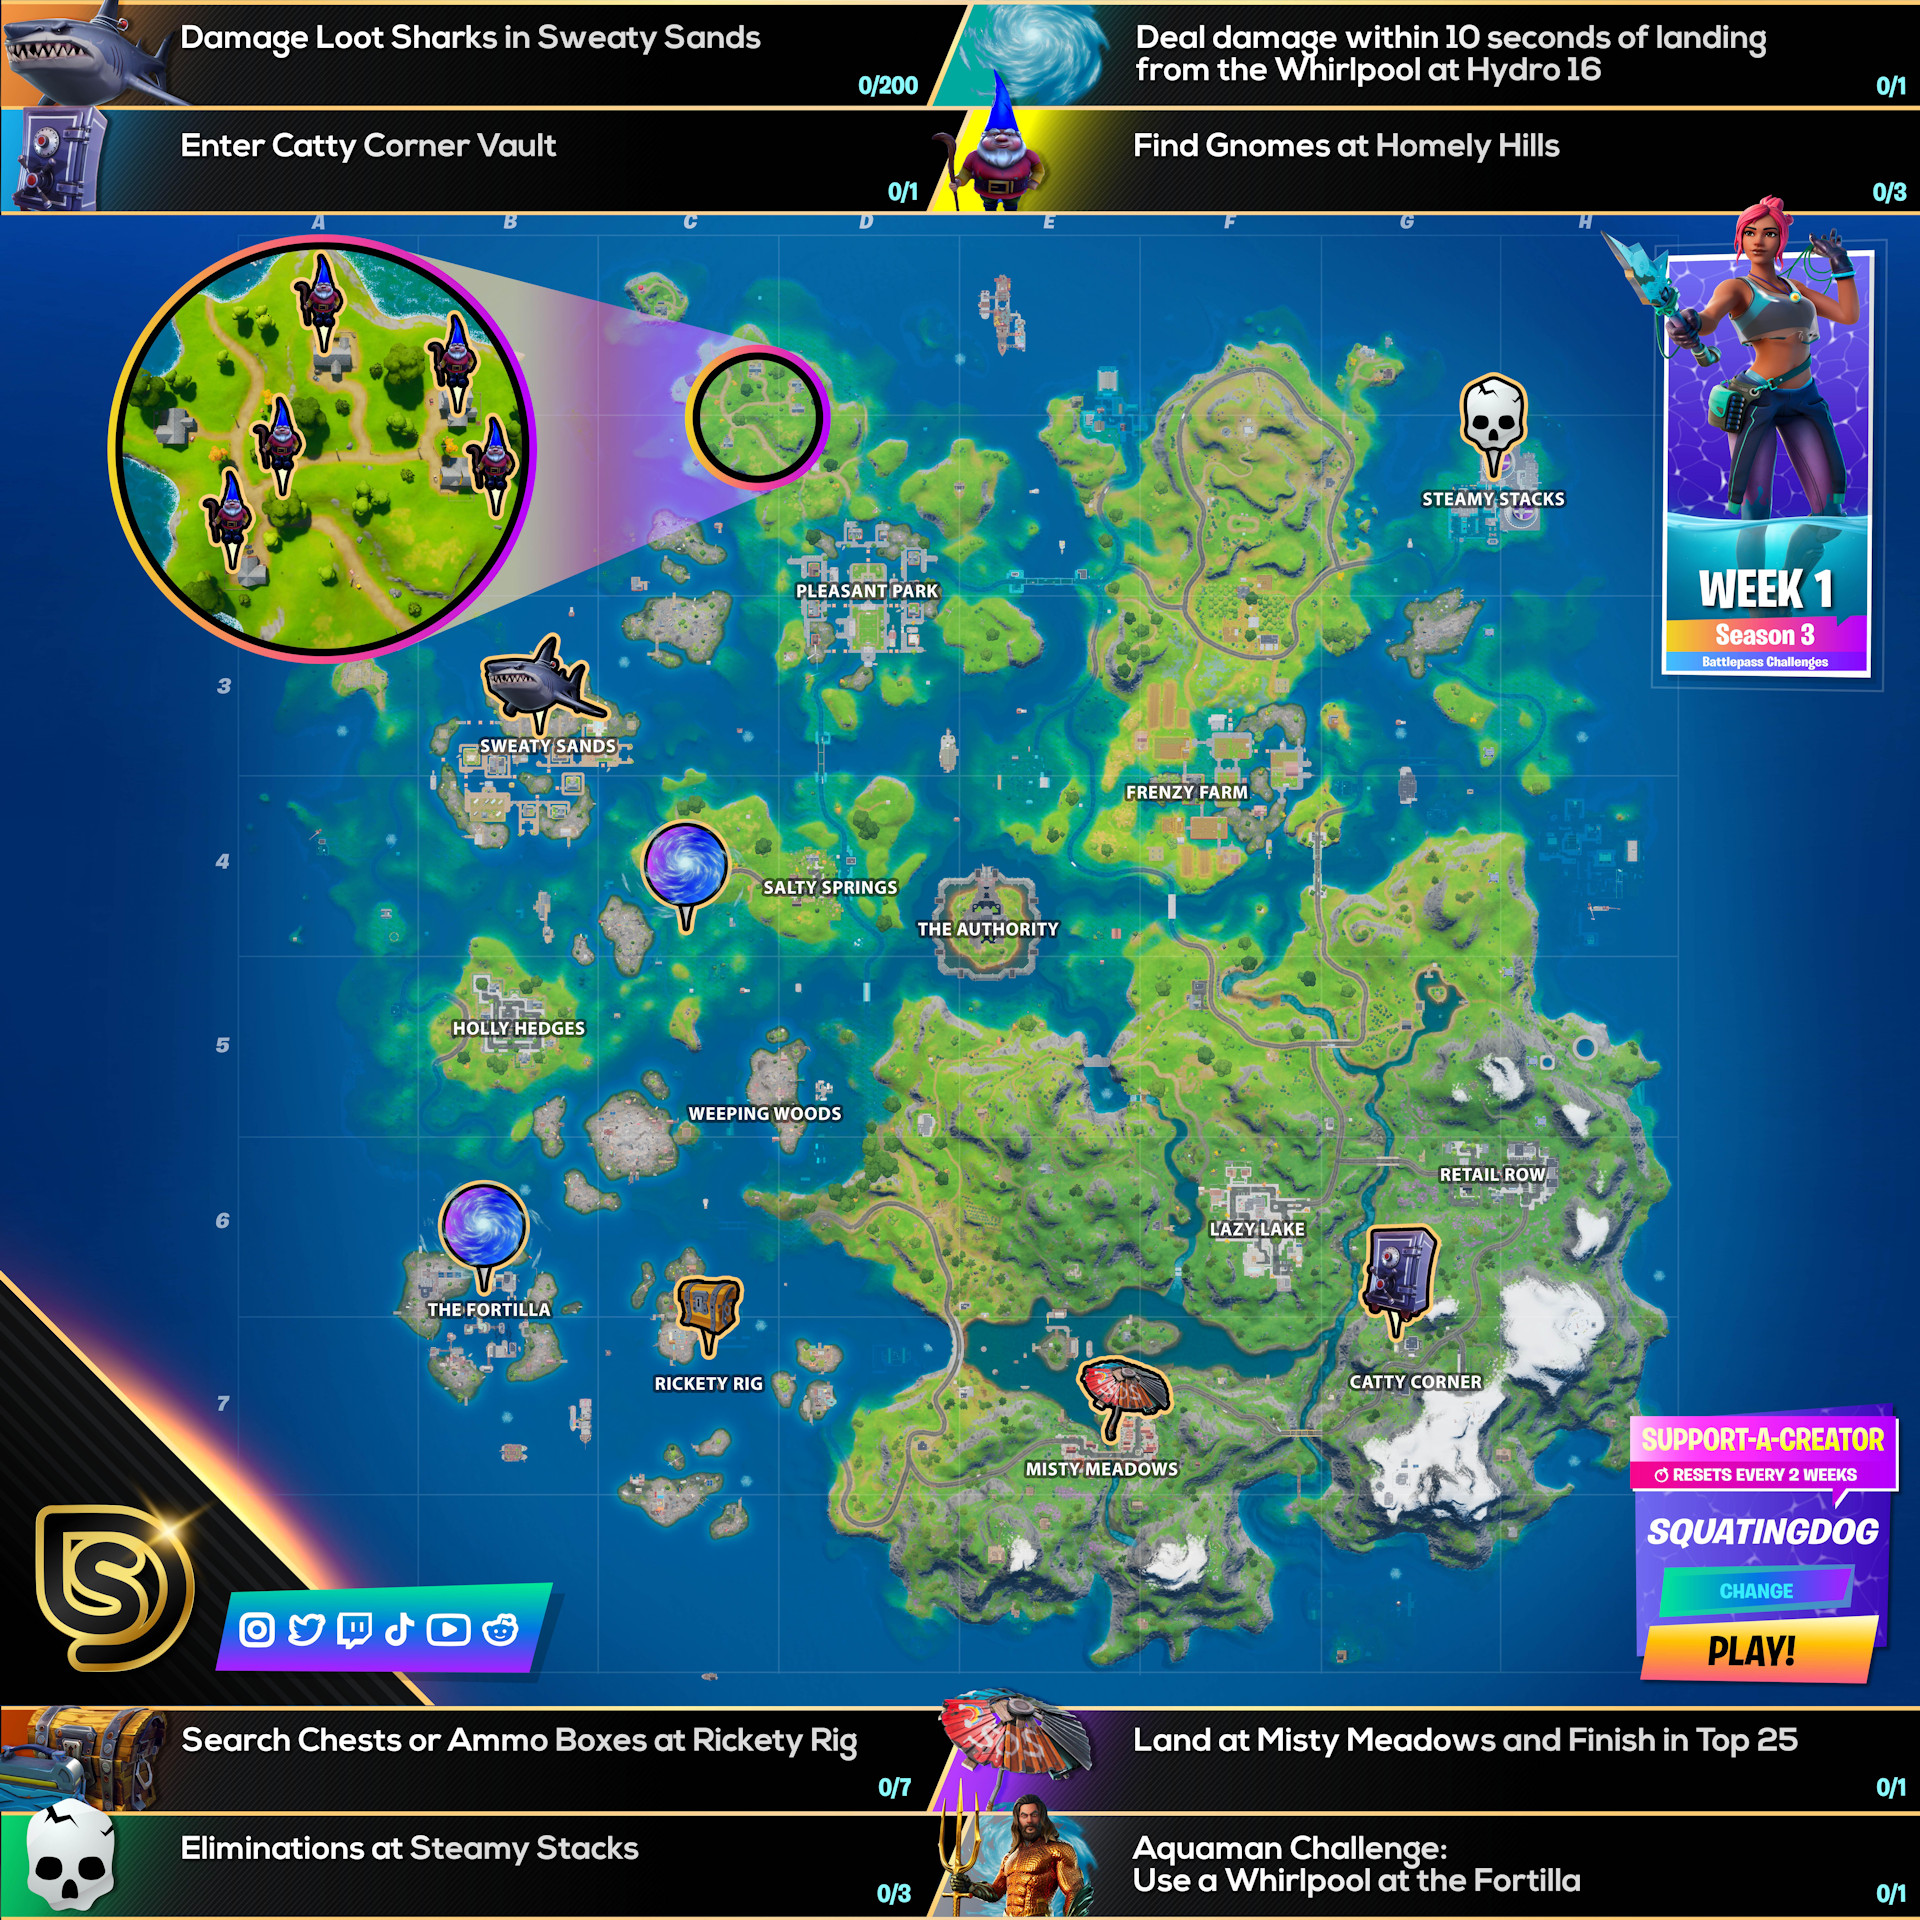 How To View Their Challenges Fortnite Fortnite Chapter 2 Season 3 Week 1 Challenges Cheat Sheet Video Games Blogger